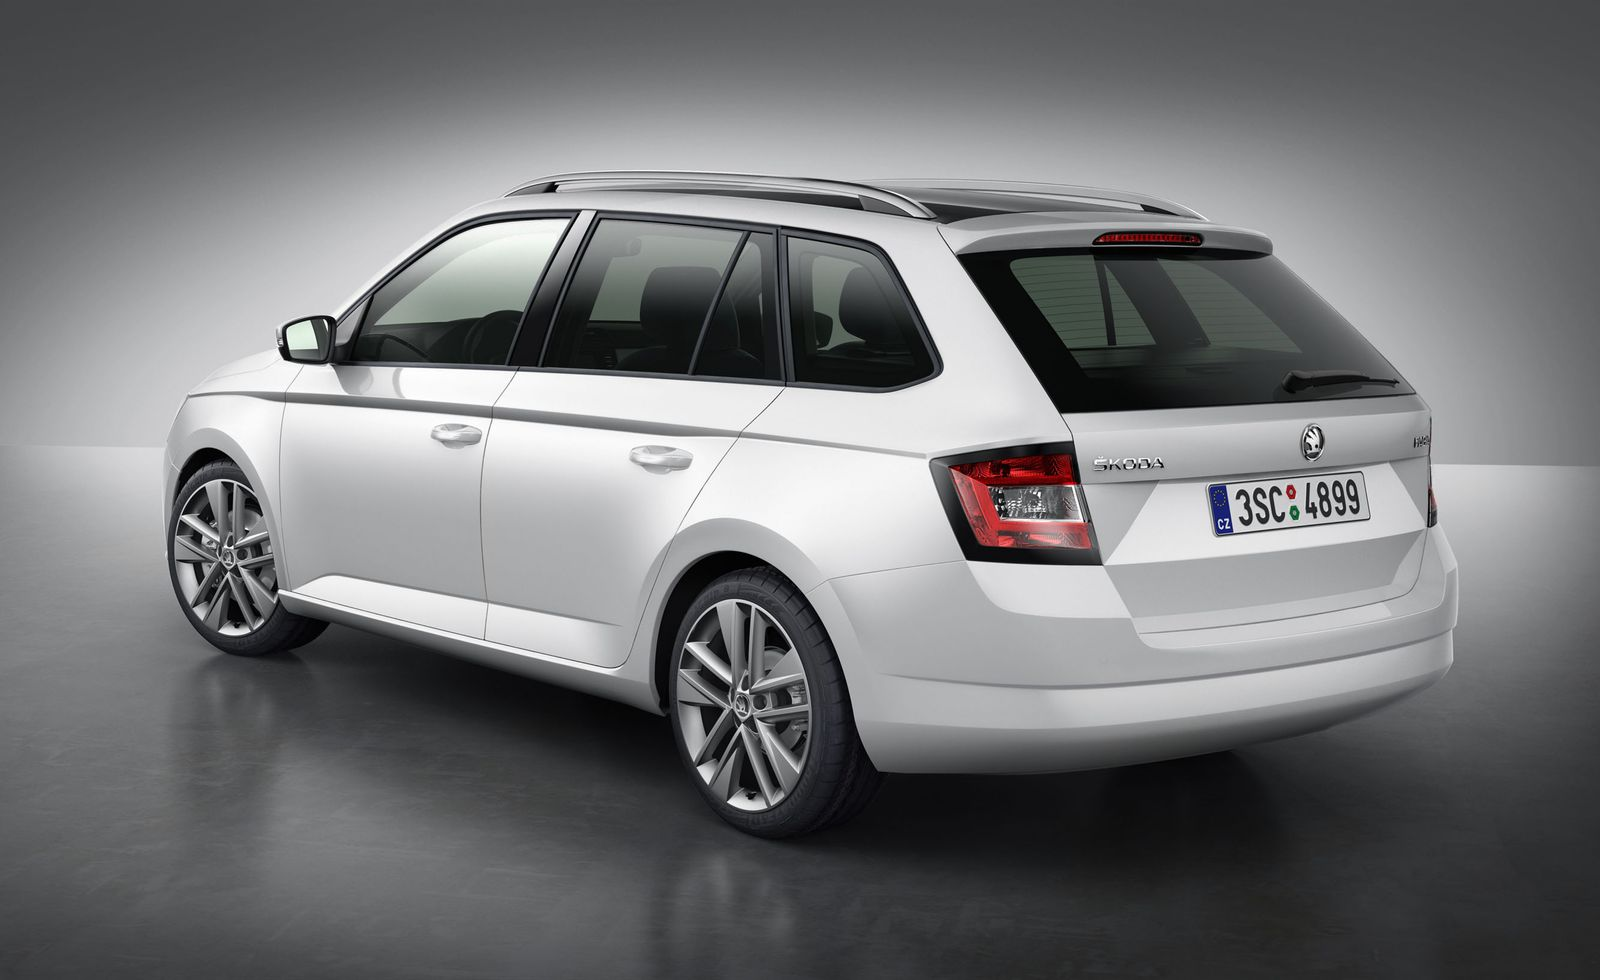 2015 skoda fabia estate first details carwow. Black Bedroom Furniture Sets. Home Design Ideas